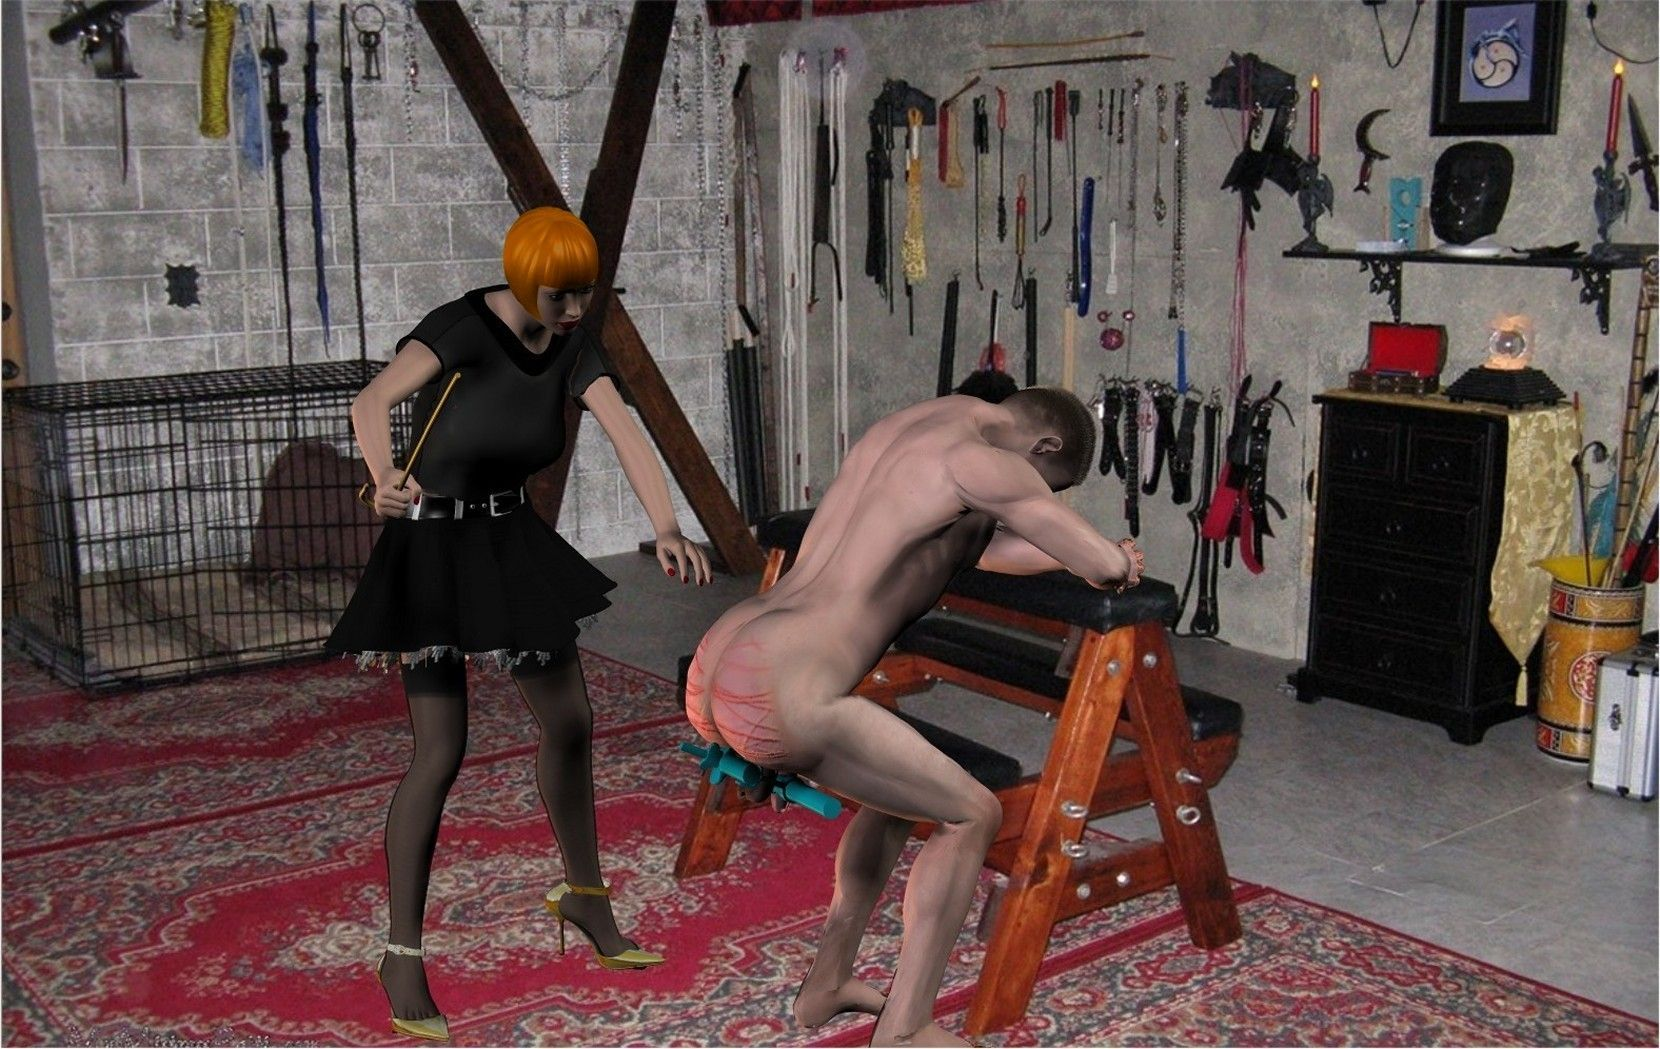 Princess Bedroom Ideas Read Sadistic Woman Punishes Slave Man In Basement Home